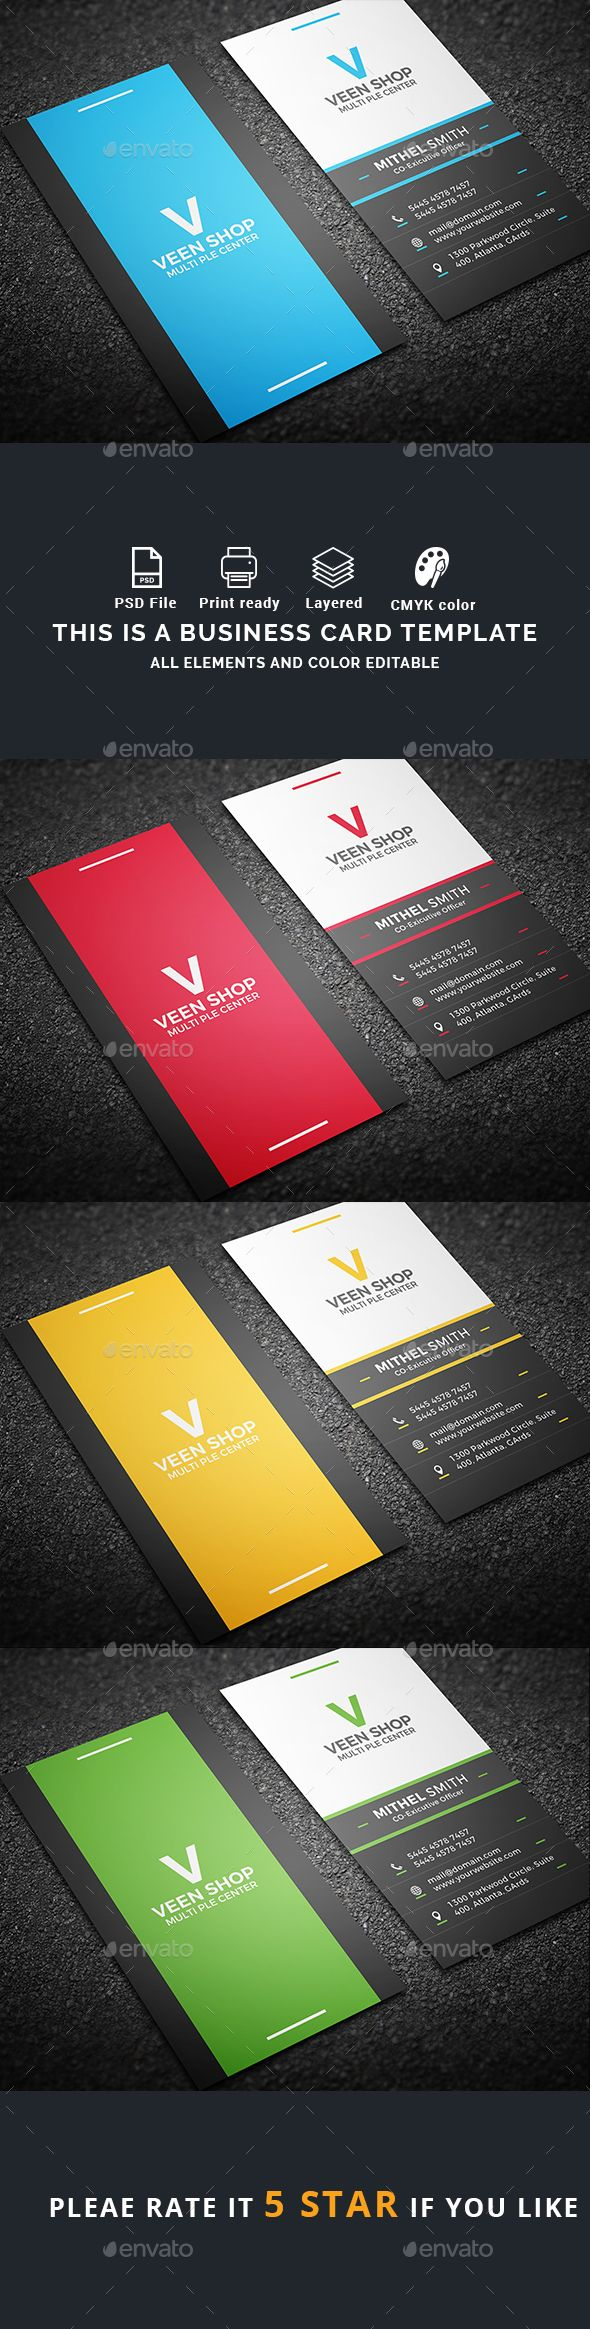 Best Business Card Inspiration Images On Pinterest Business - Buy business card template